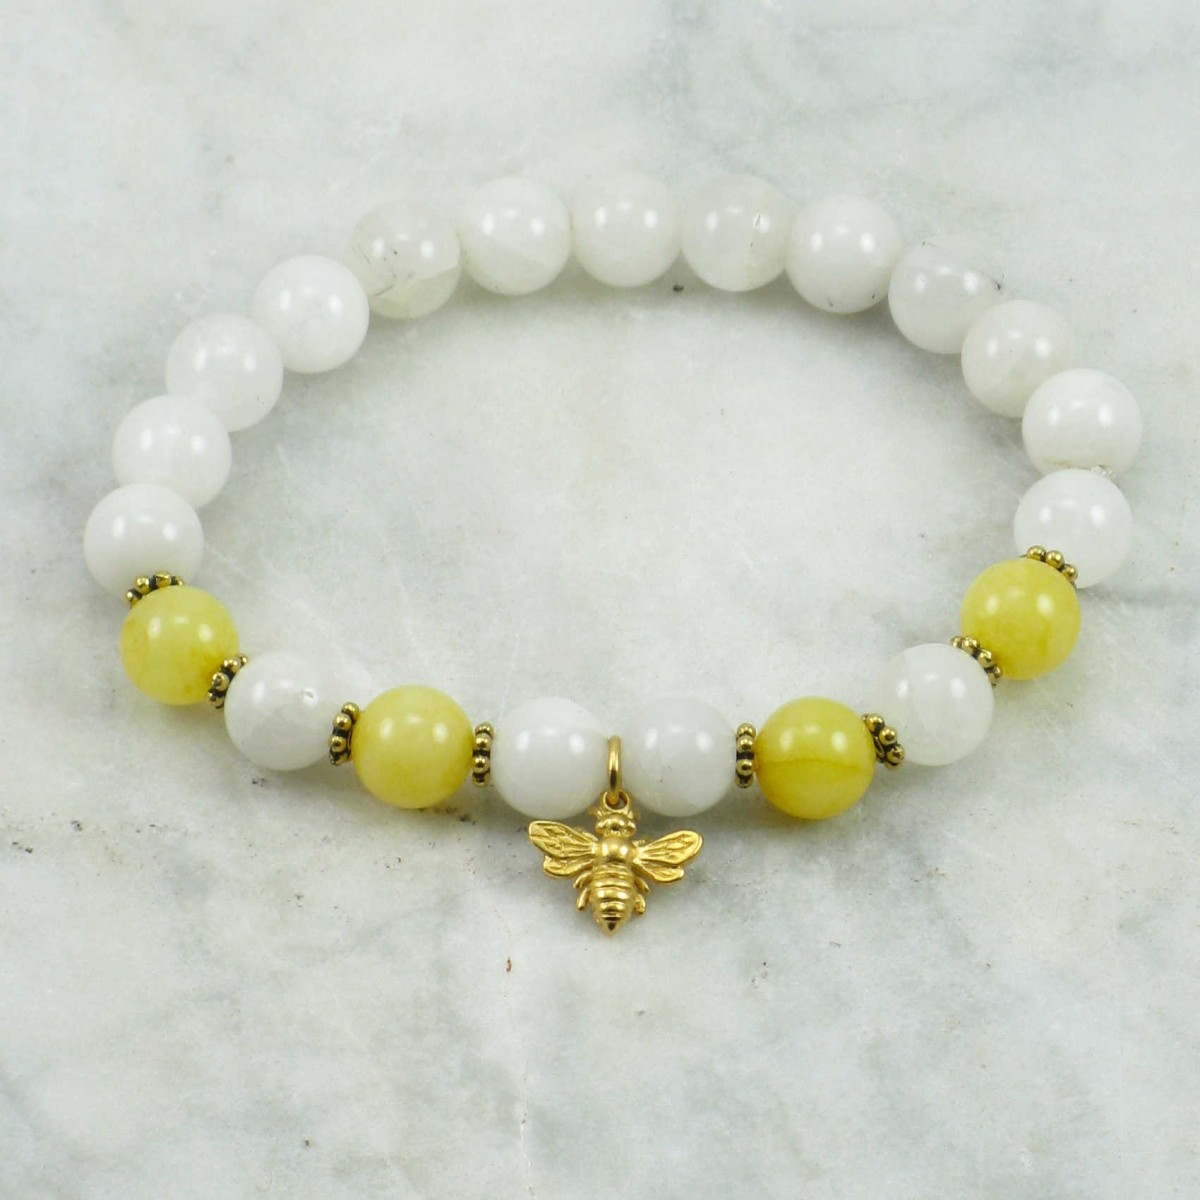 Honey_Mala_Bracelet_21_Quartz_Mala_Beads_Buddhist_Bracelet